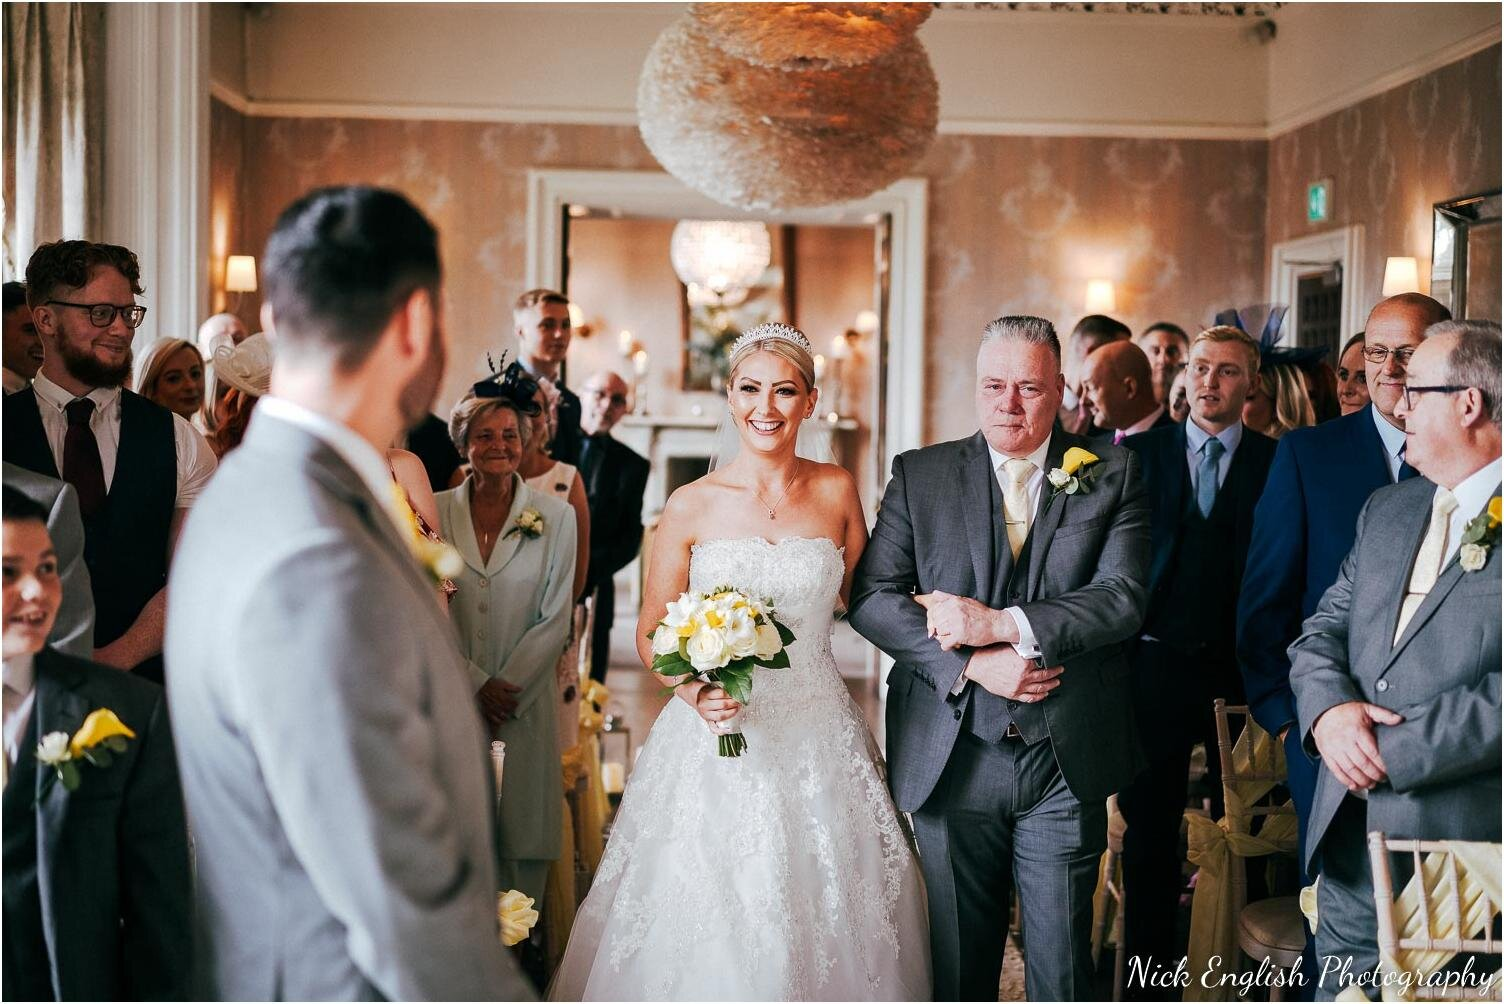 Falcon_Manor_Yorkshire_Wedding_Photographer-38.jpg